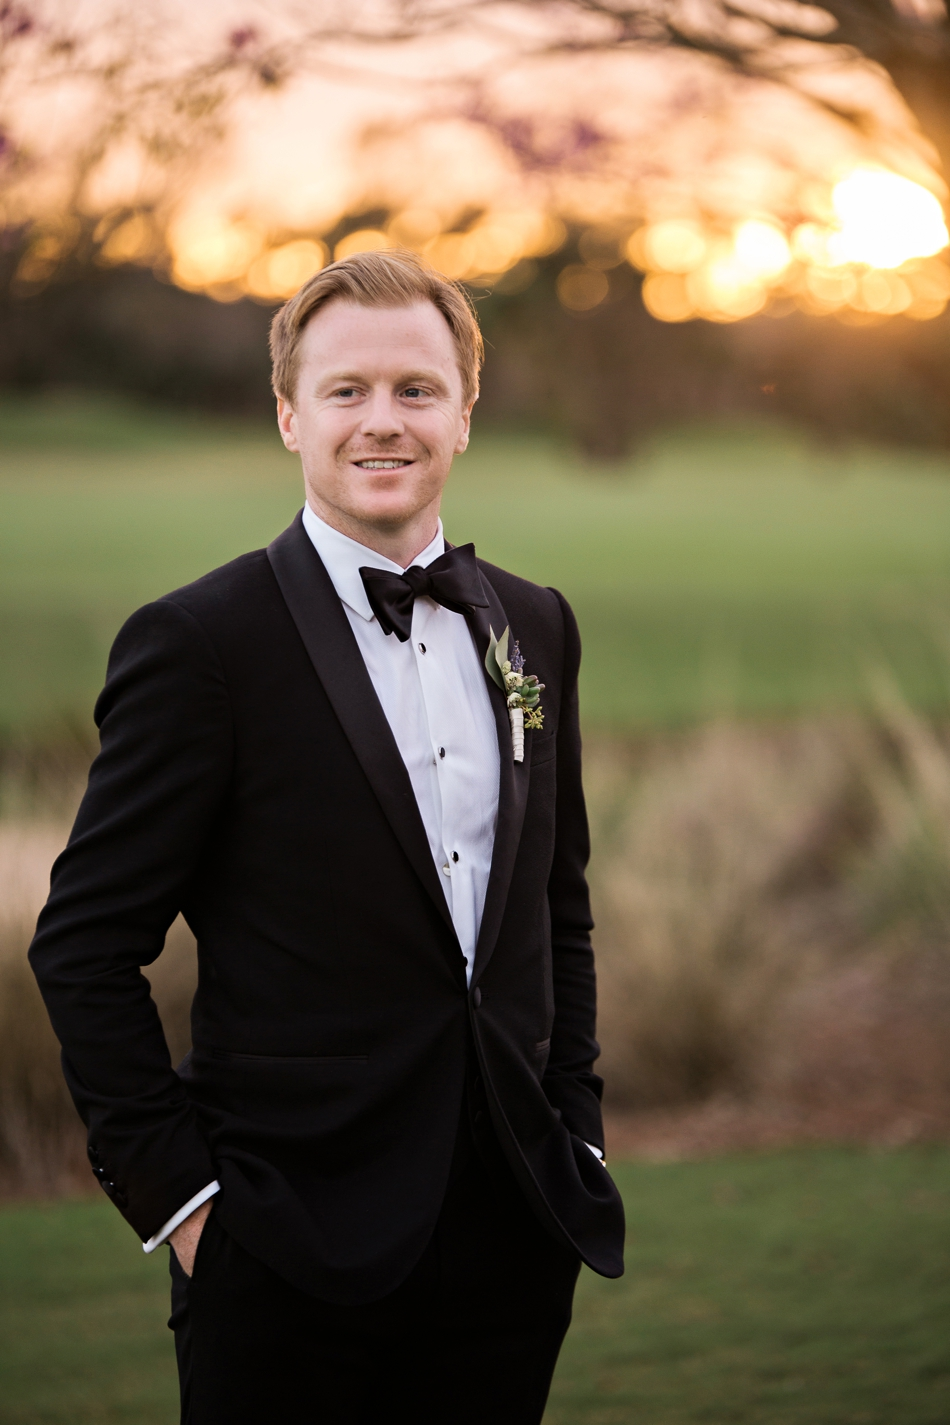 dax mccarty wedding pictures